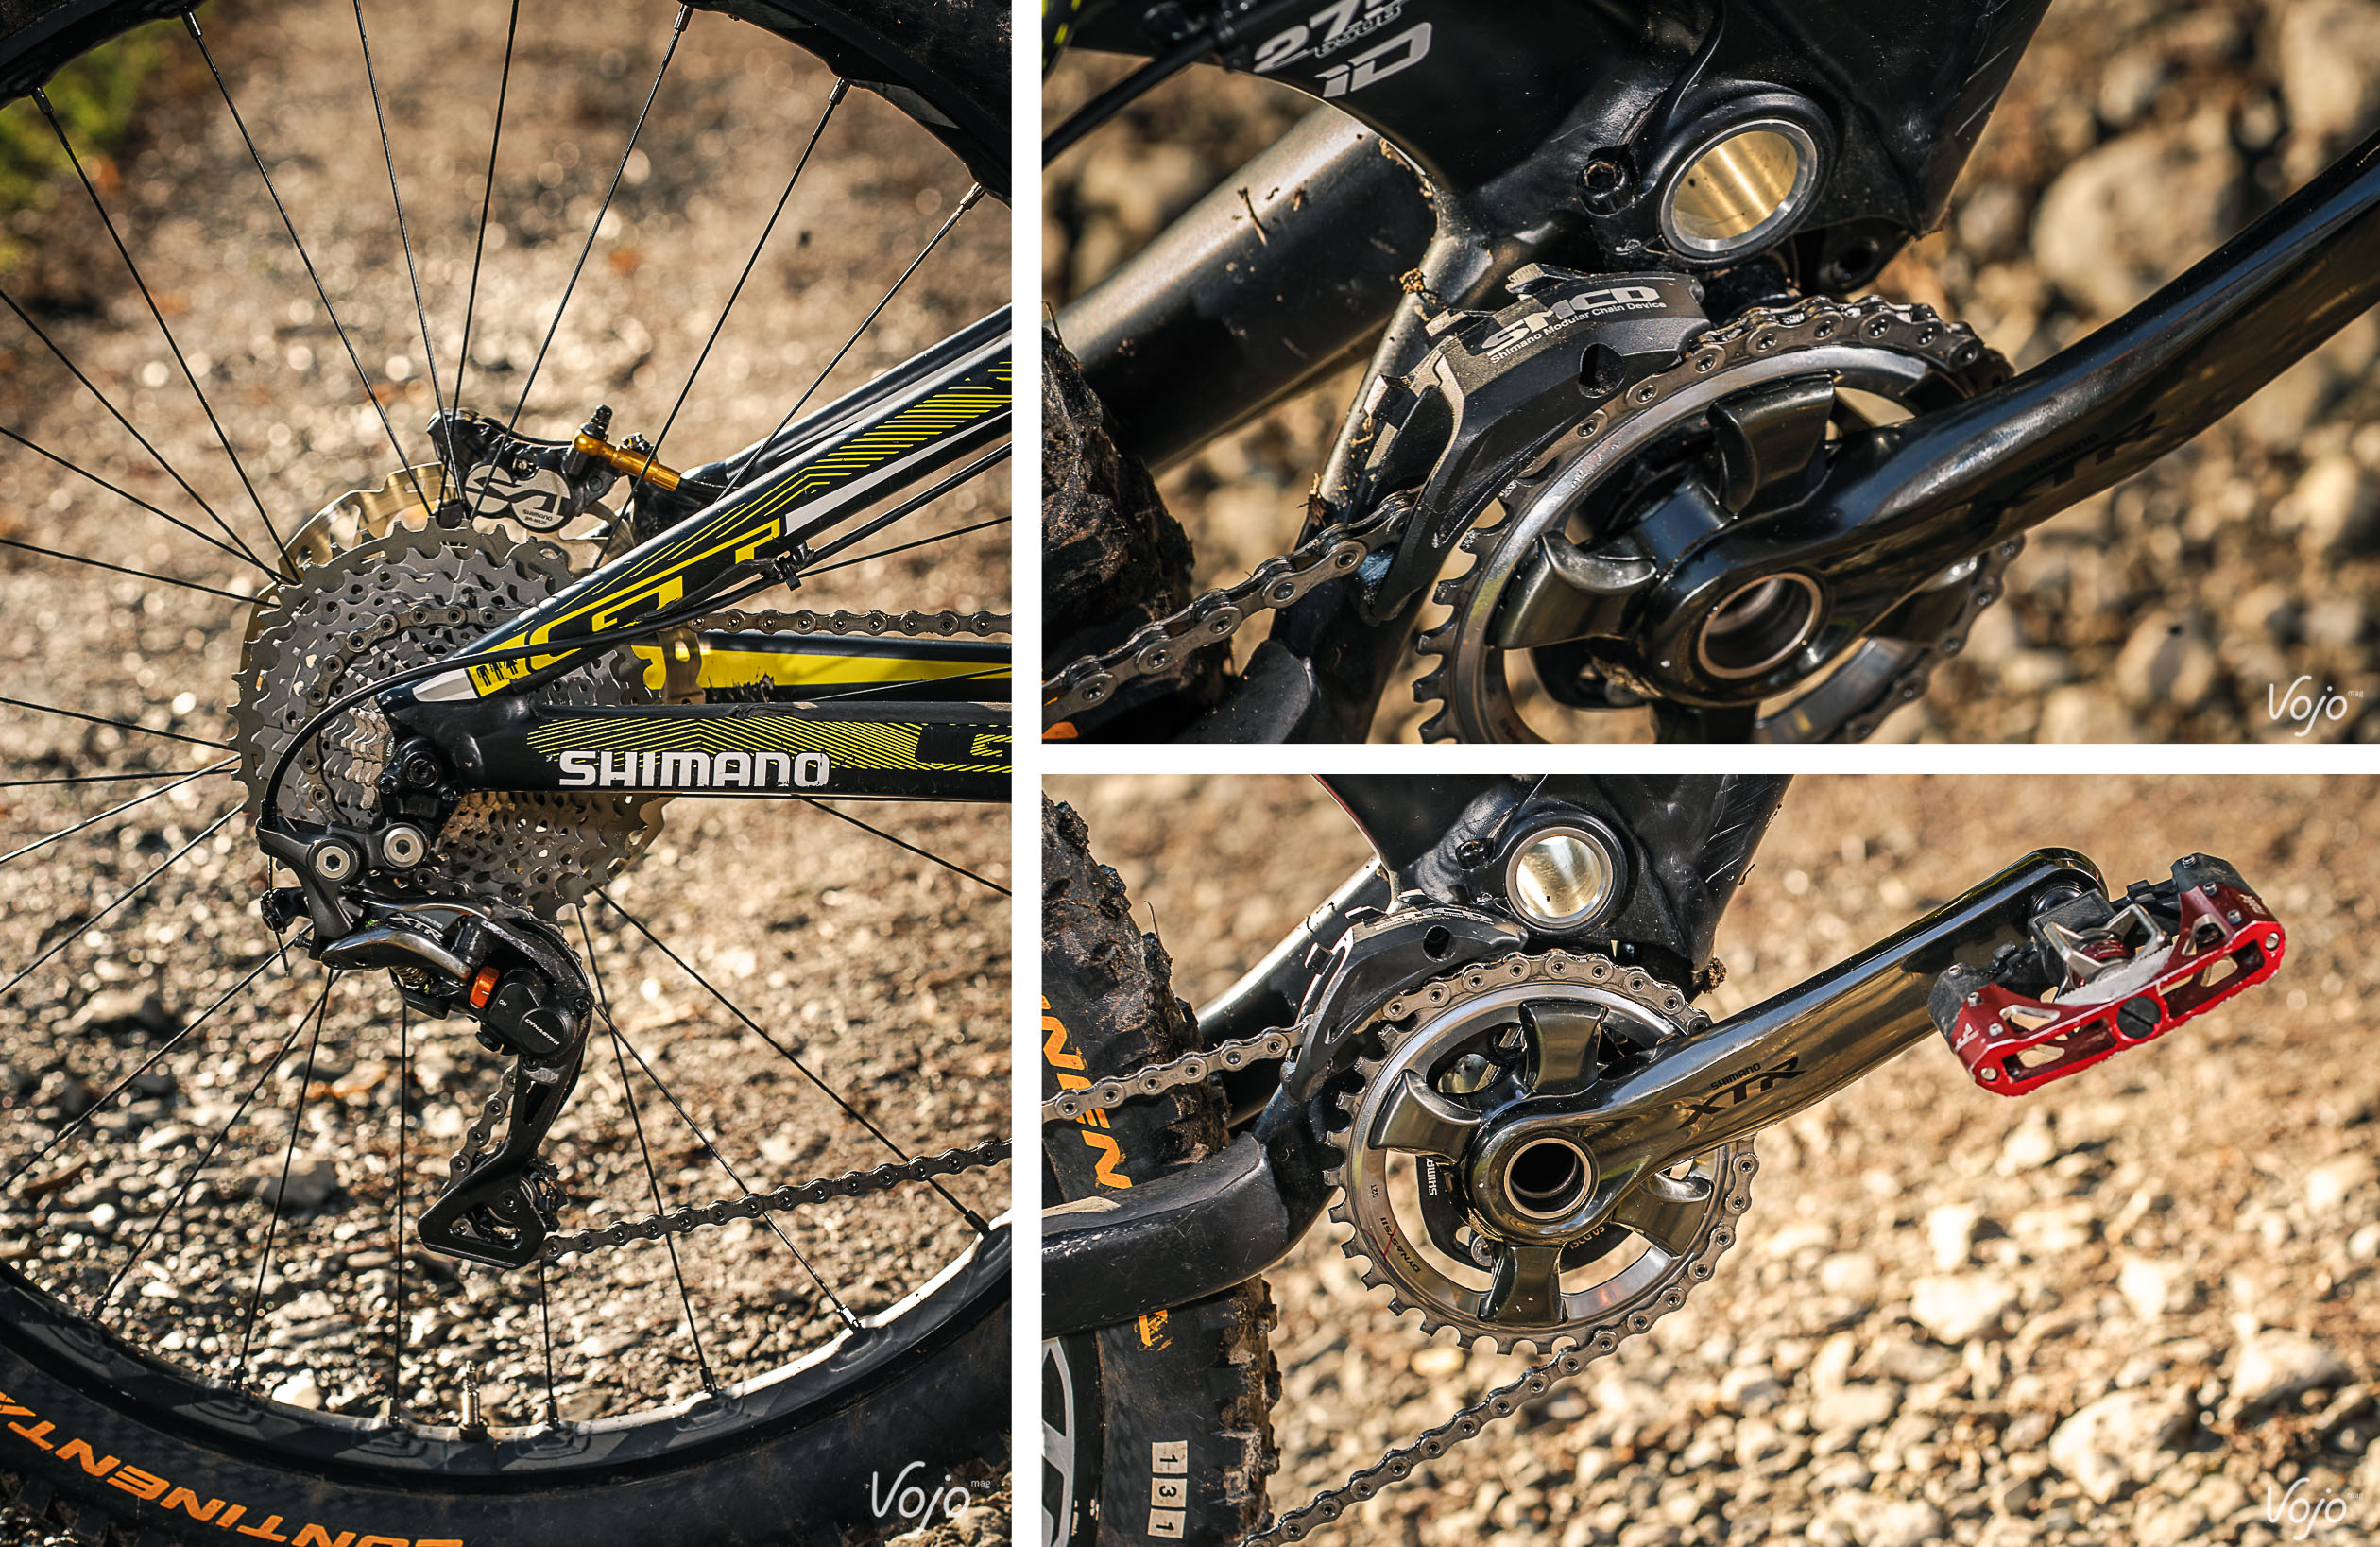 Compo3_Martin_Maes_GT_Sanction_MTB_Bike_Check_Copyright_OBeart_VojoMag-1